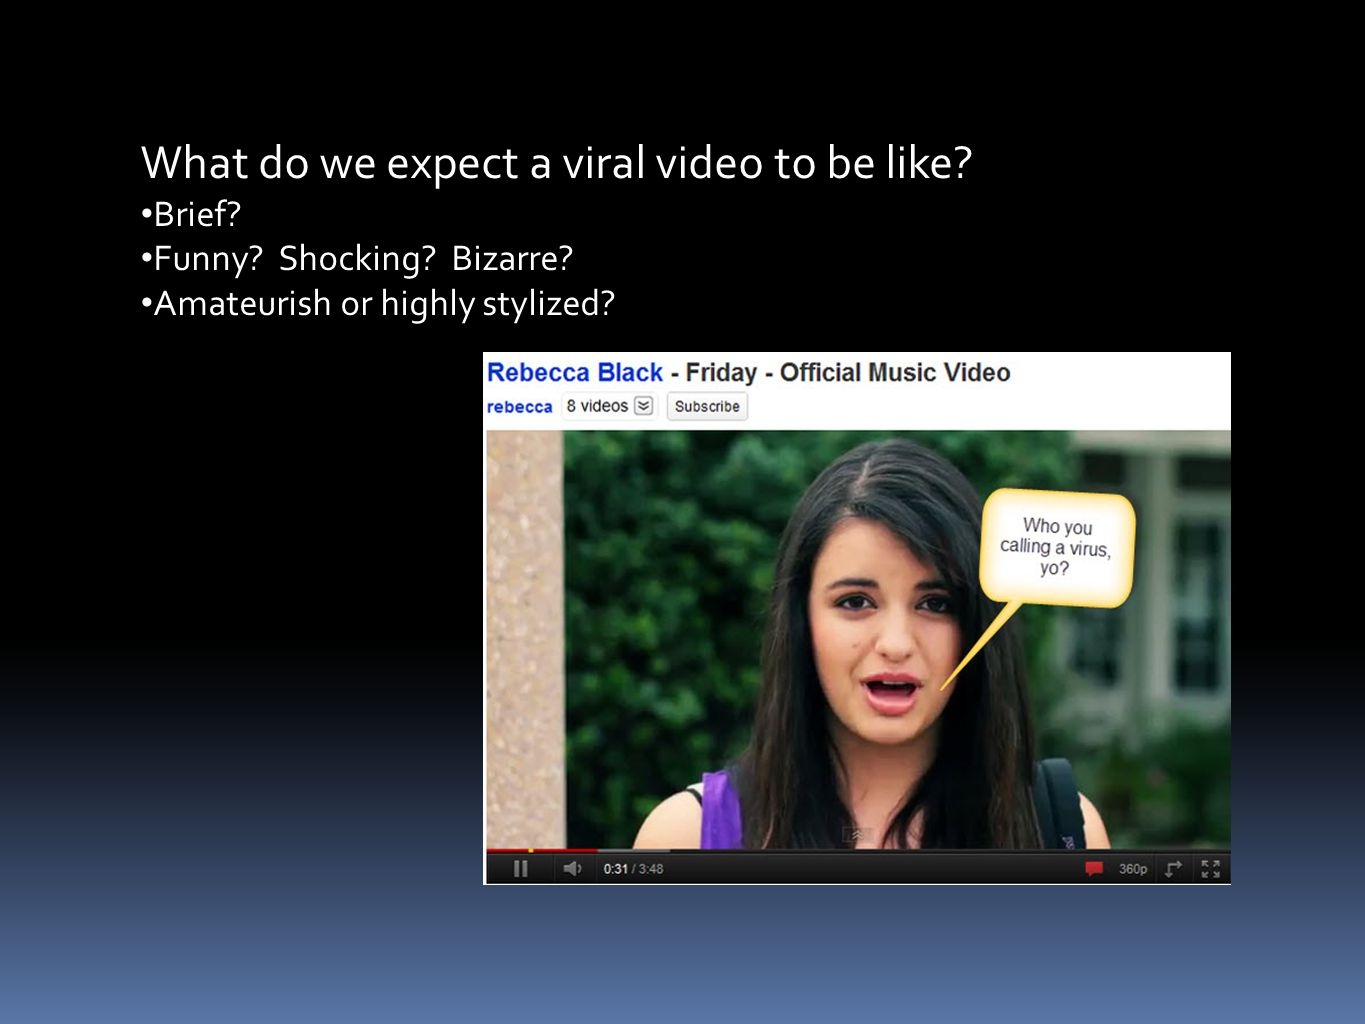 What do we expect a viral video to be like. Brief.